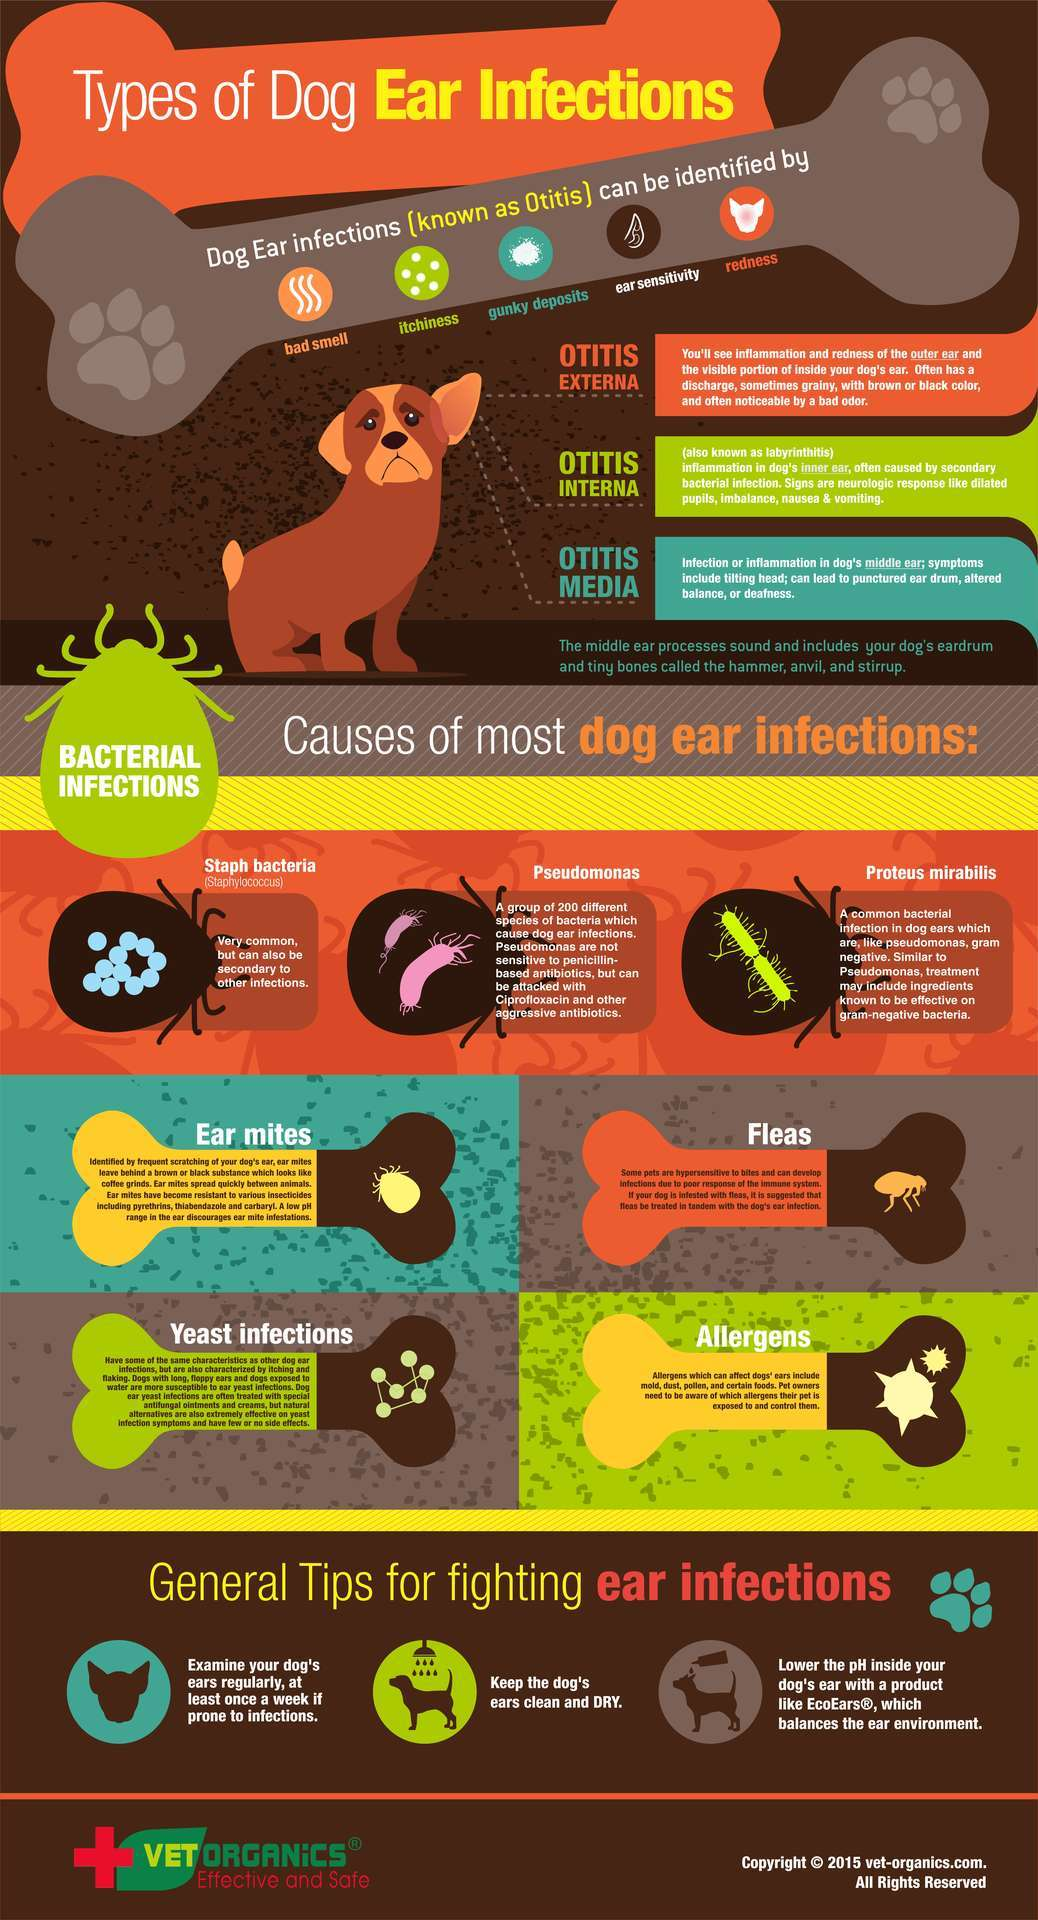 dog_ear_infographic_02-16